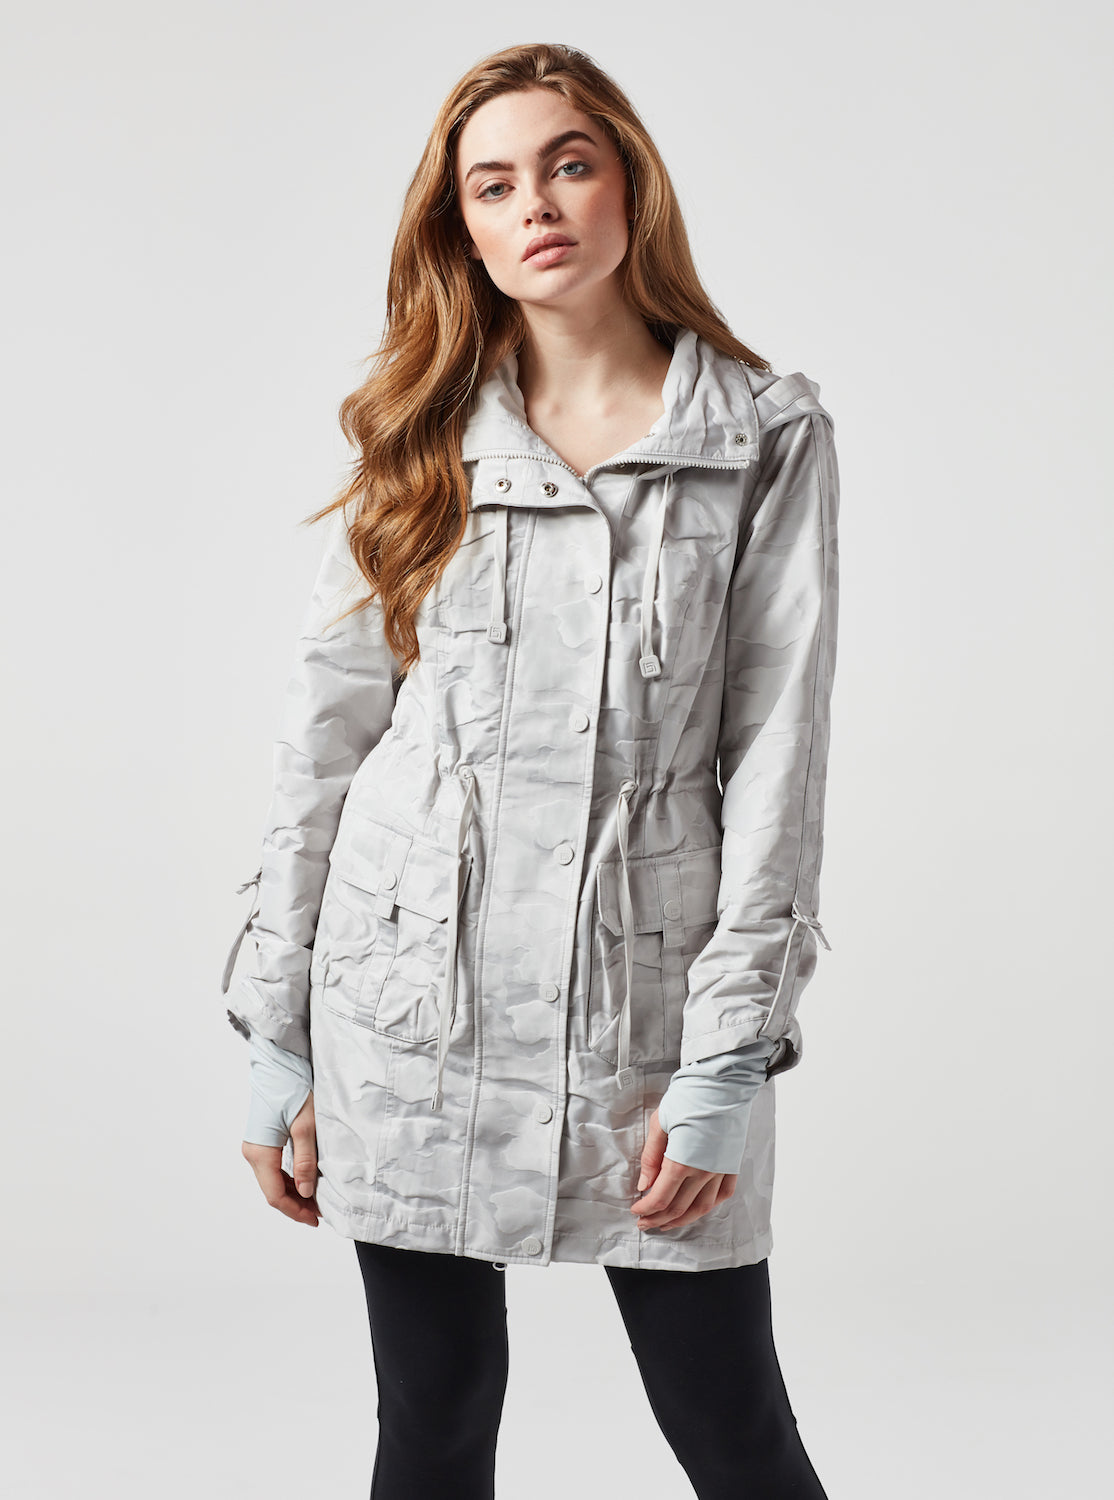 Camo Anorak Blanc Noir Online Store See 51 traveler reviews, 23 candid photos, and great deals for blancnoir, ranked #6 of 15 b&bs / inns in baltimore and rated 5 of 5 at tripadvisor. camo anorak